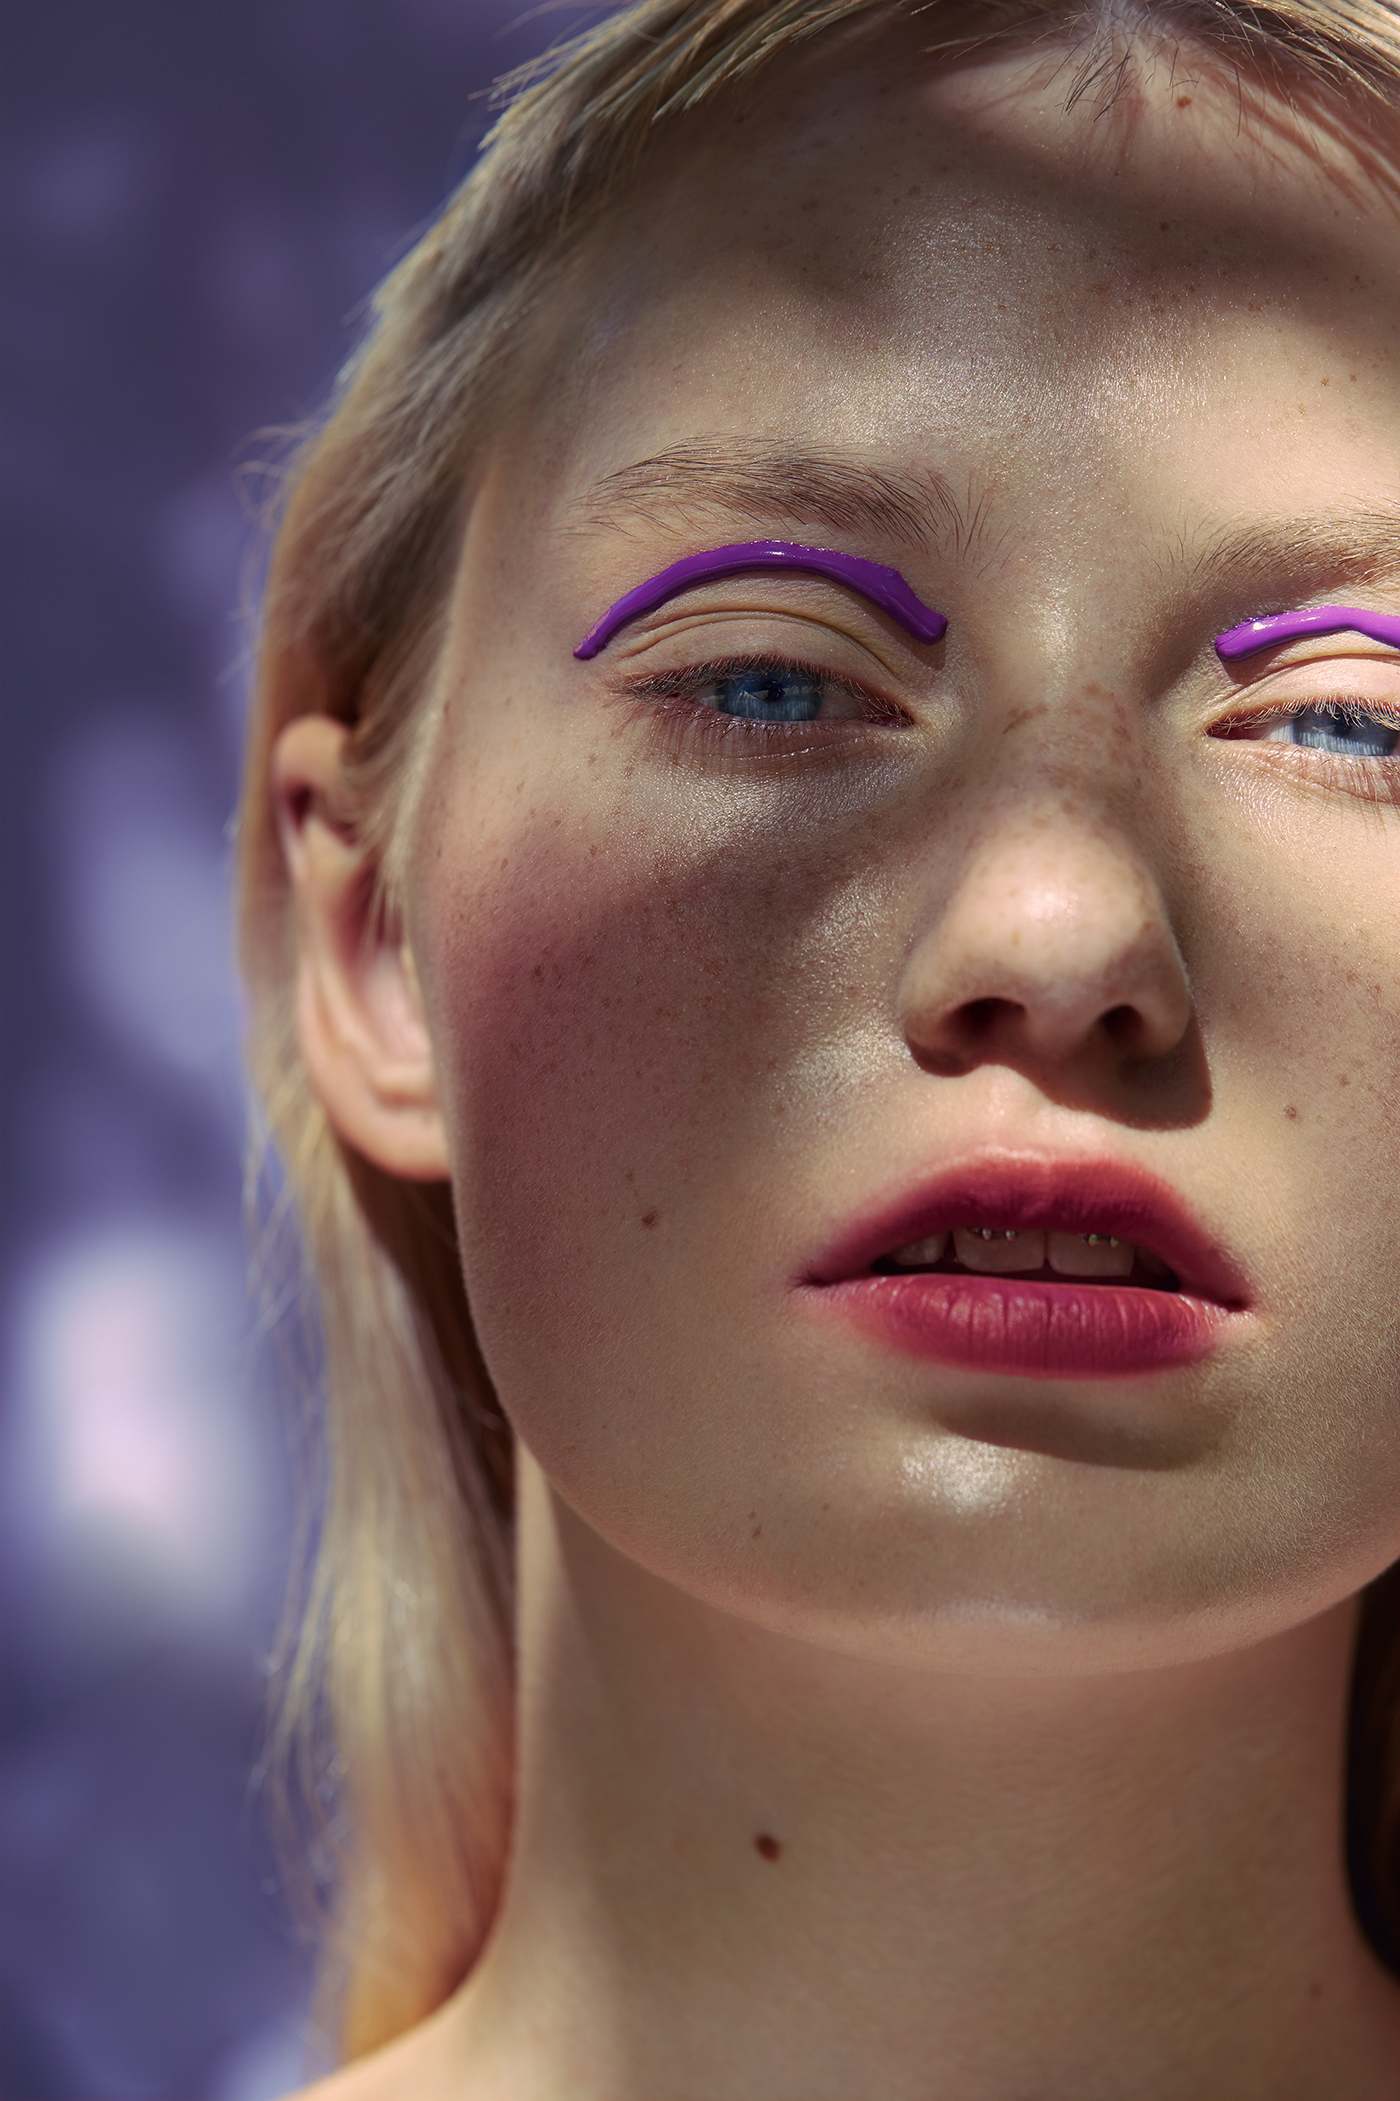 Lines on My Face for Beauty Archive - Maiken Staak